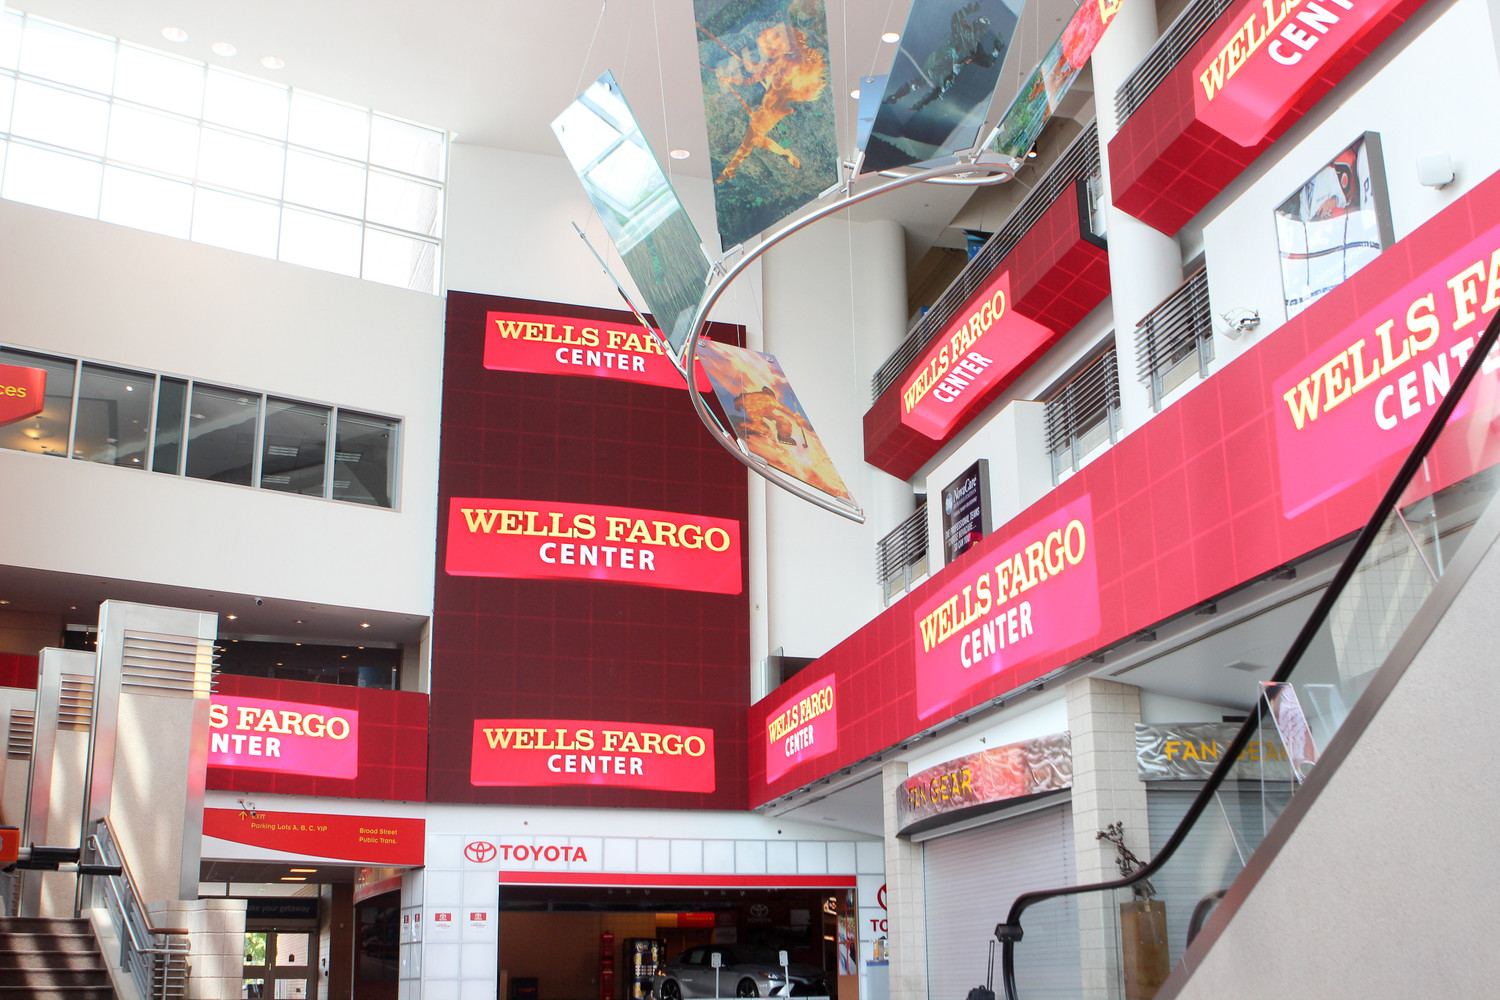 COMCAST SPECTACOR AND ANC INTRODUCE INDUSTRY-LEADING TECHNOLOGY ENHANCEMENTS AT WELLS FARGO CENTER